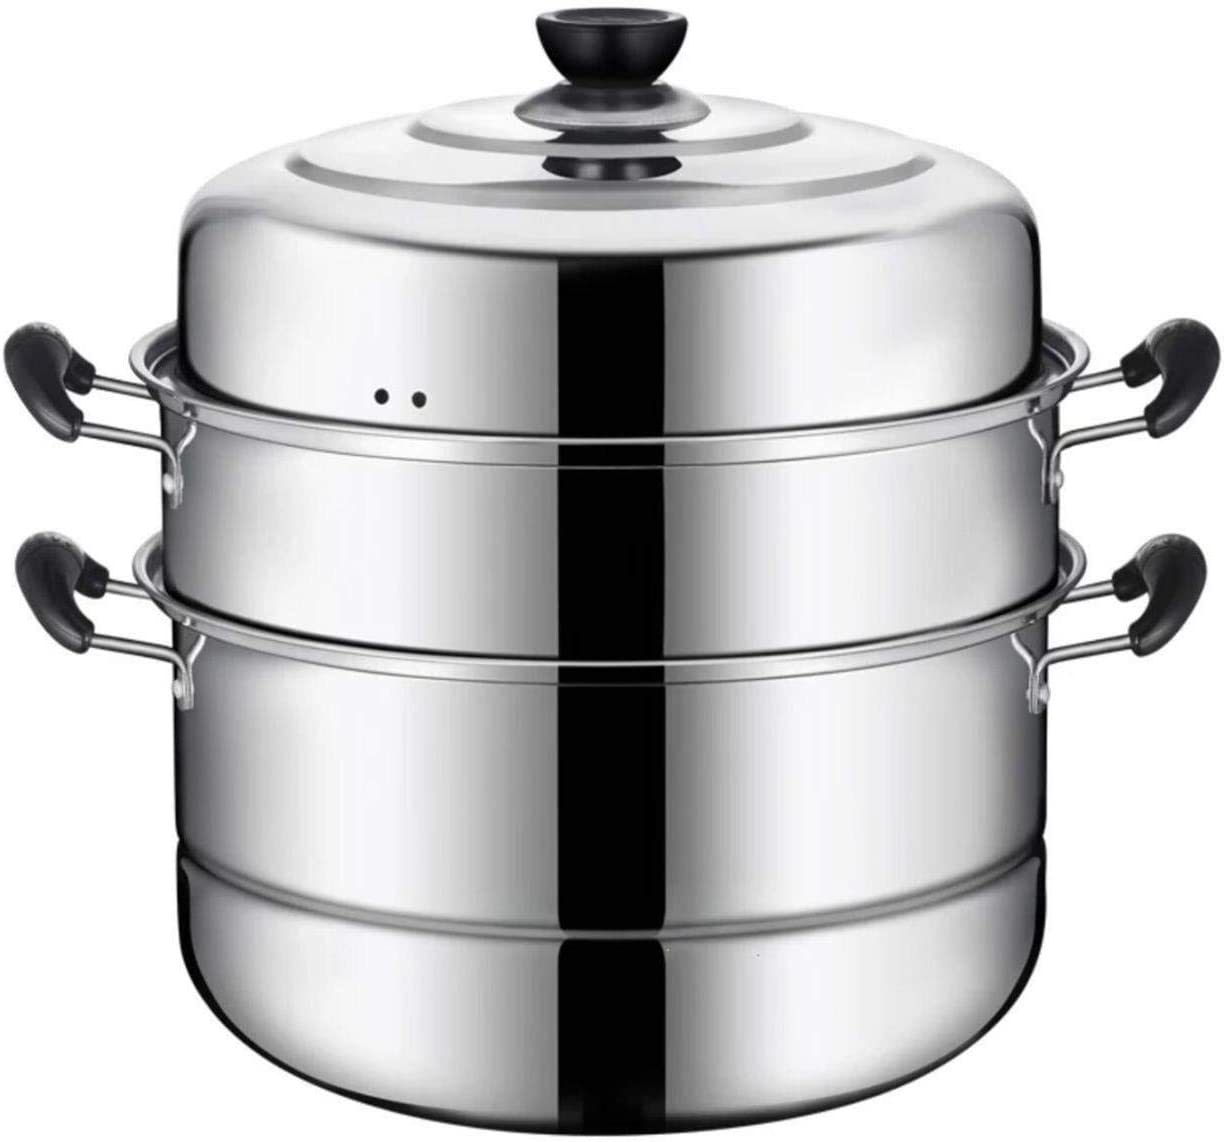 Beeiee Steaming Cookware, Steamer Pot, Multi-layer Boiler, 11 Inch Stainless Steel Steamer, 10Qt